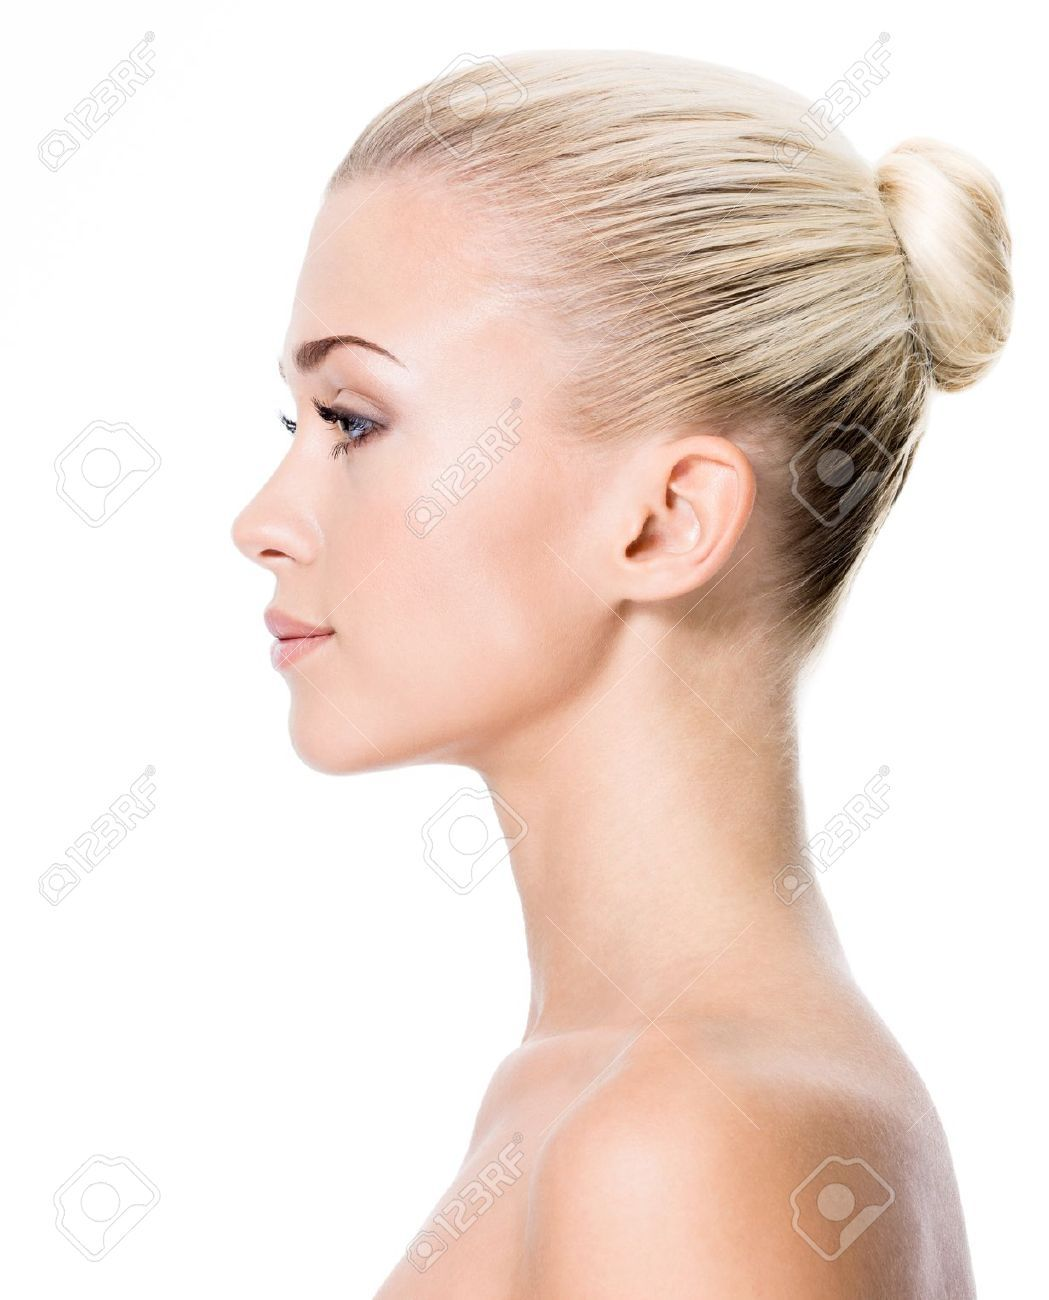 Woman Profile 17642694 Profile Portrait Of Young Blond Woman Isolated